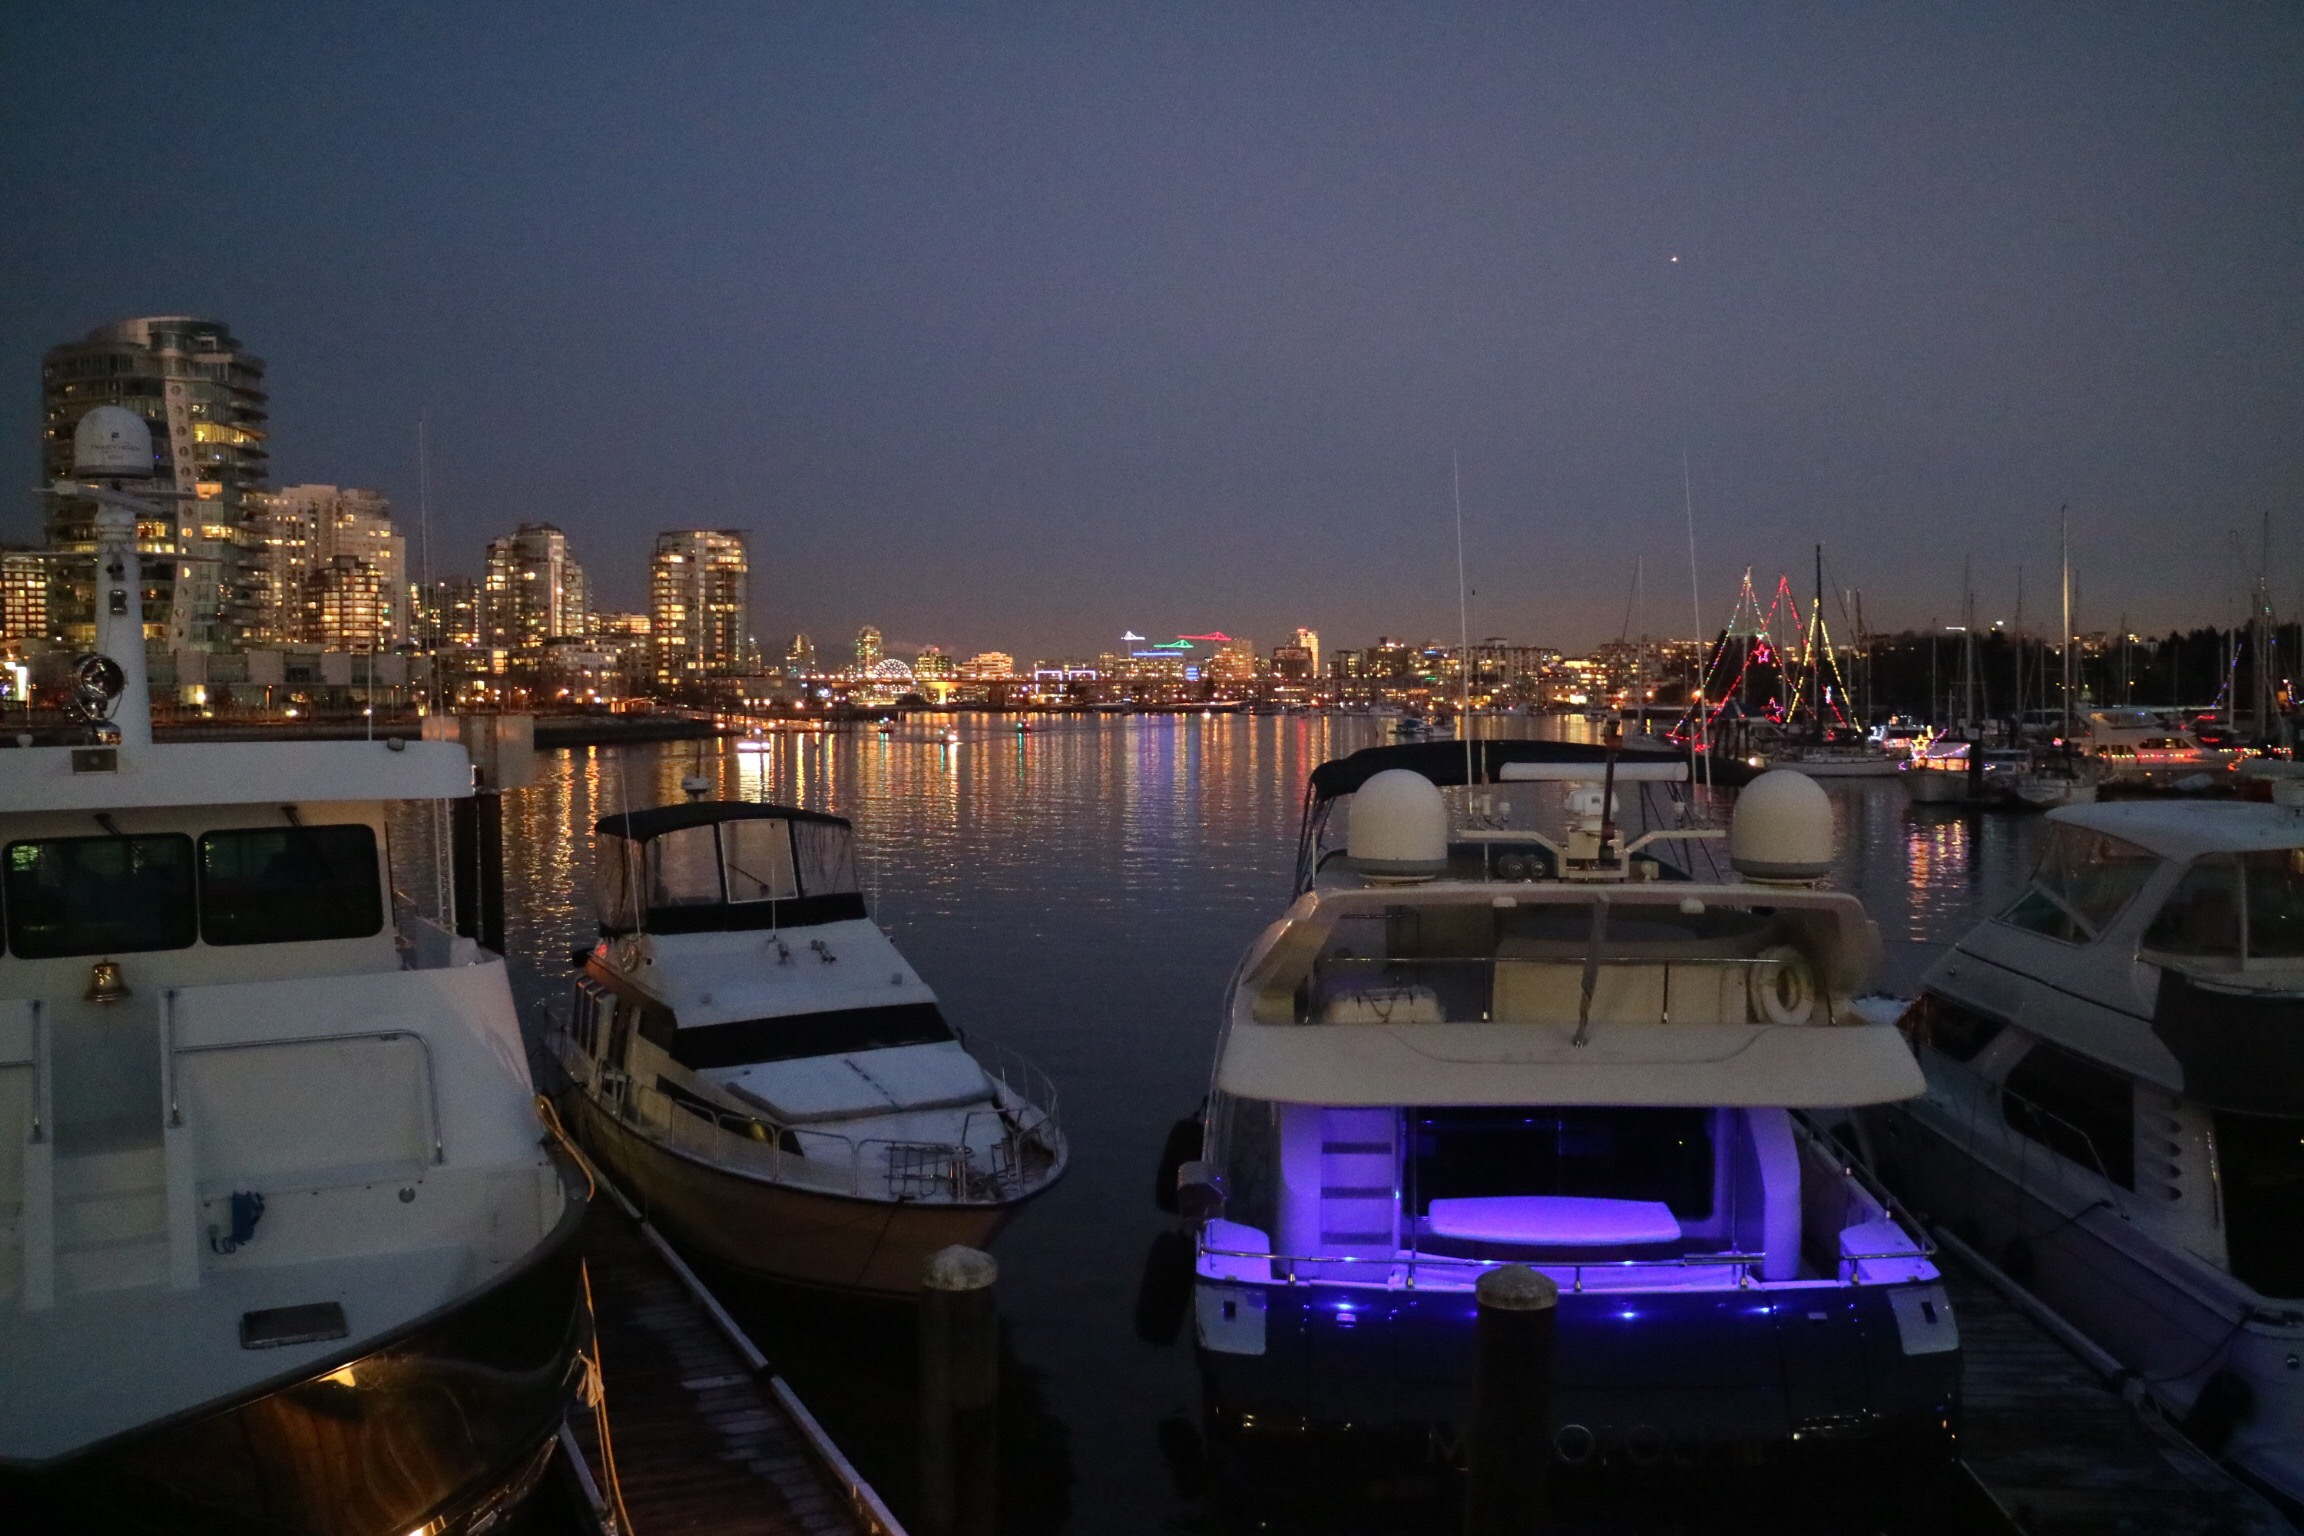 Views from Dockside Restaurant patio